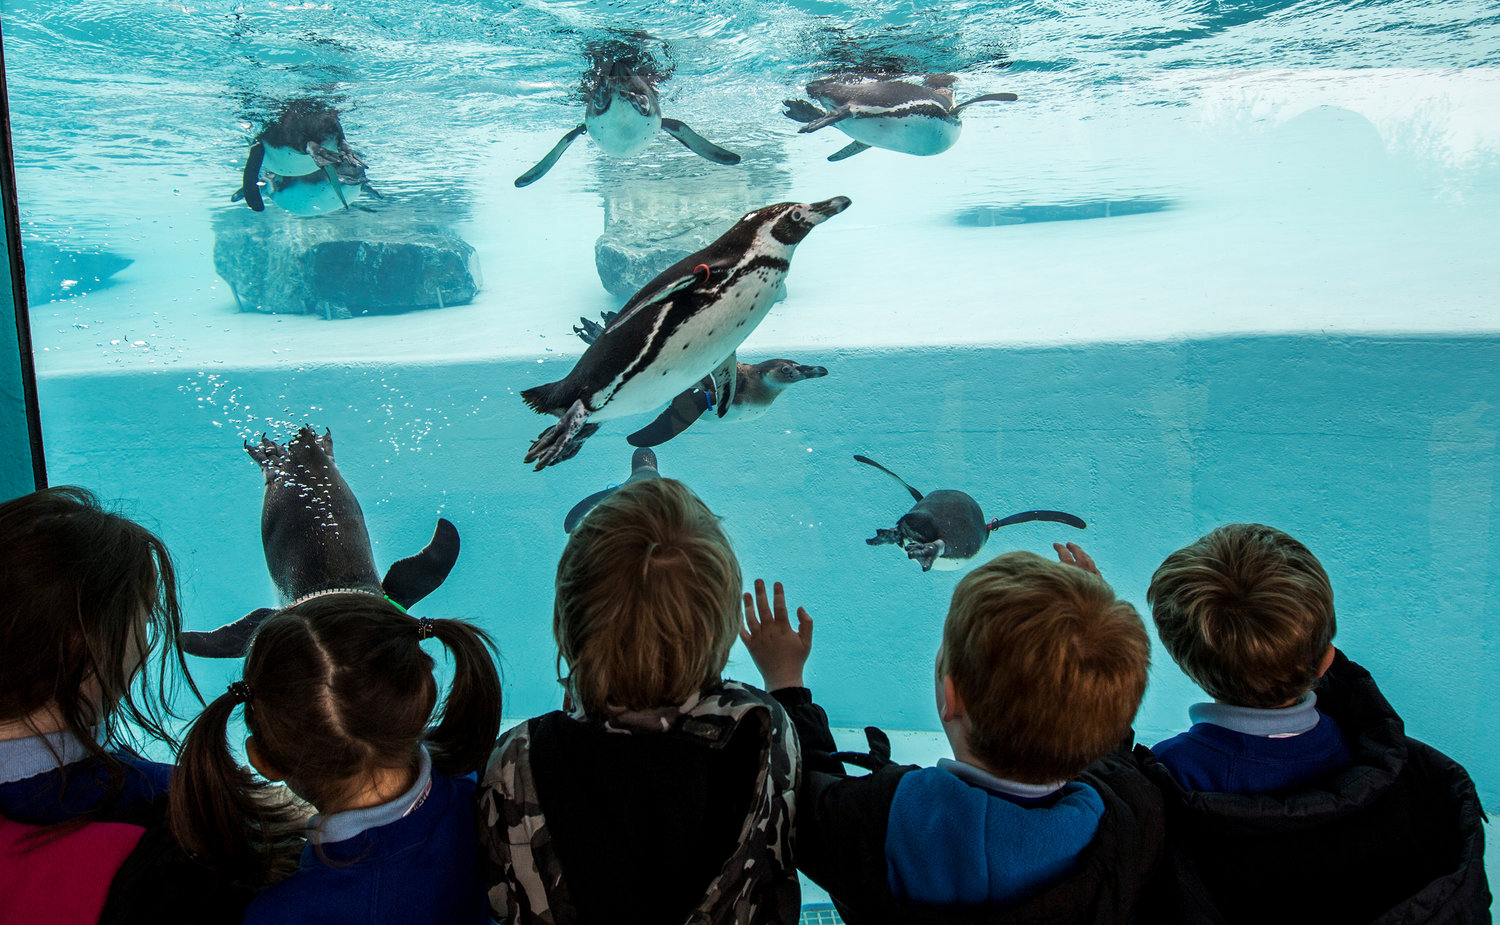 Penguin viewing on a school trip